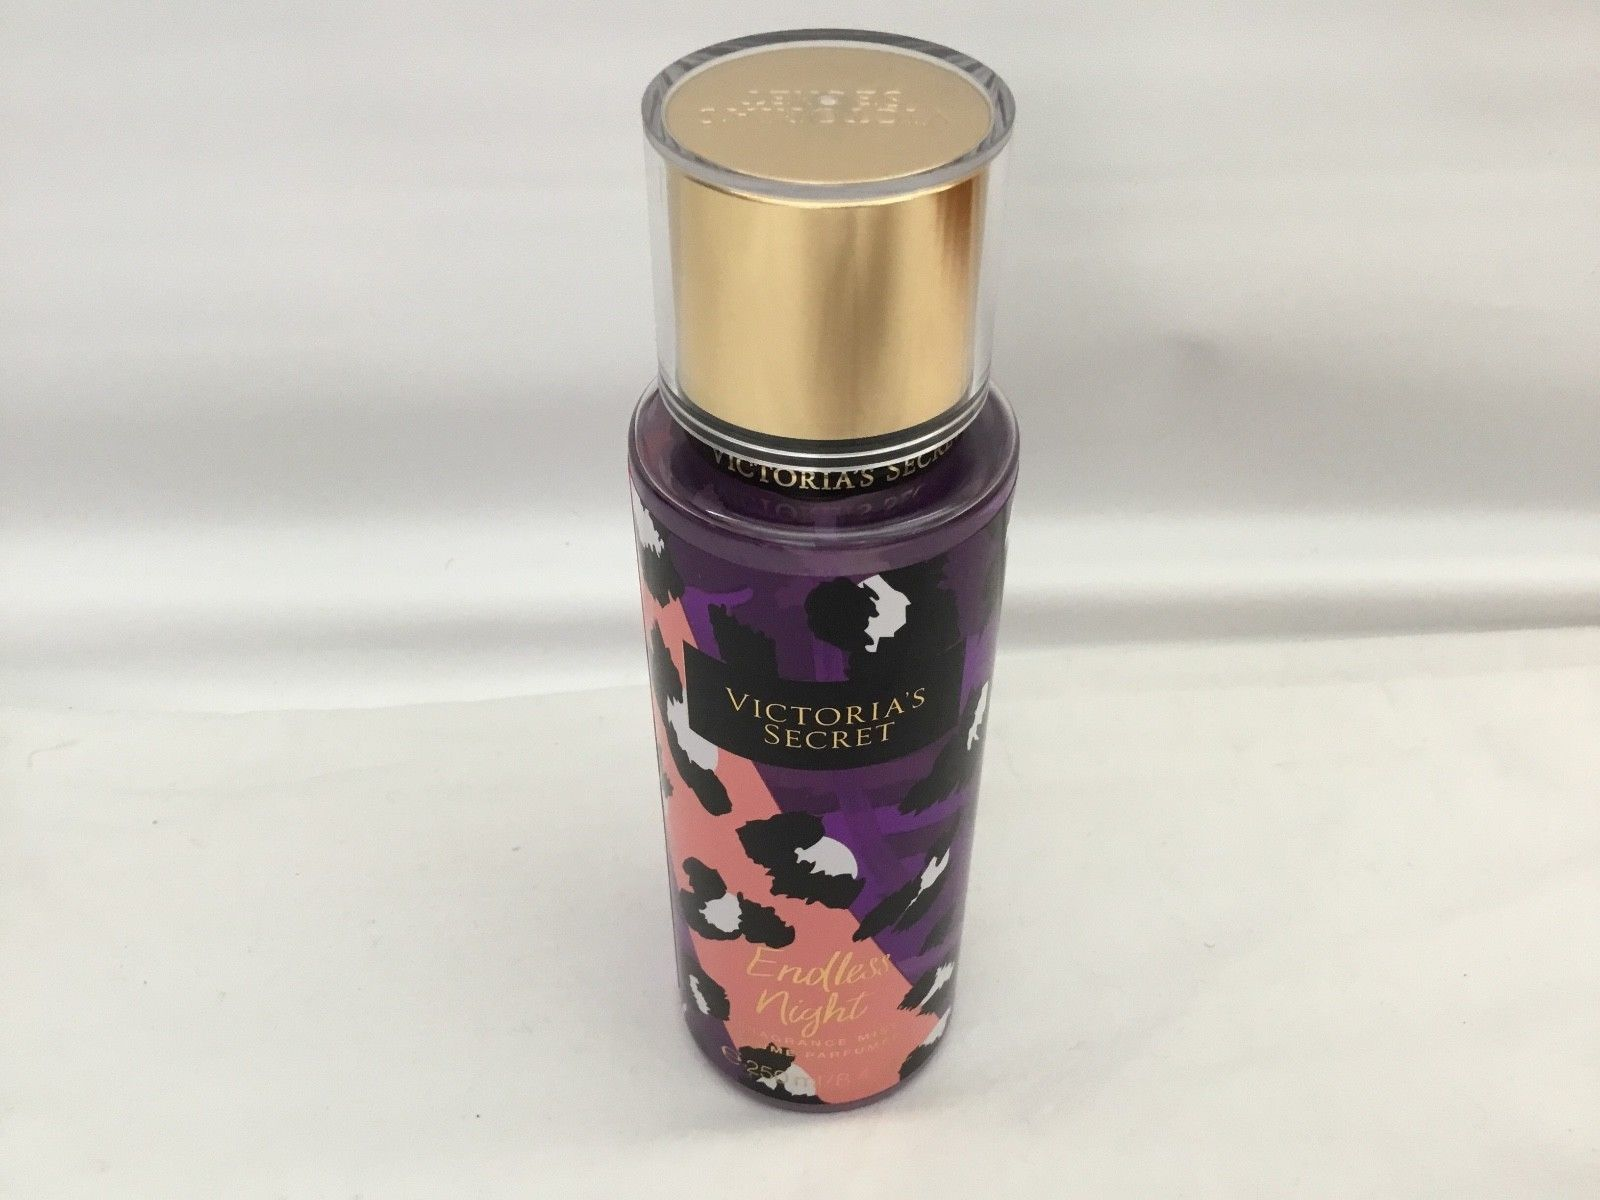 3cf3b8581a Victoria s Secret Endless Night Fragrance and similar items. S l1600